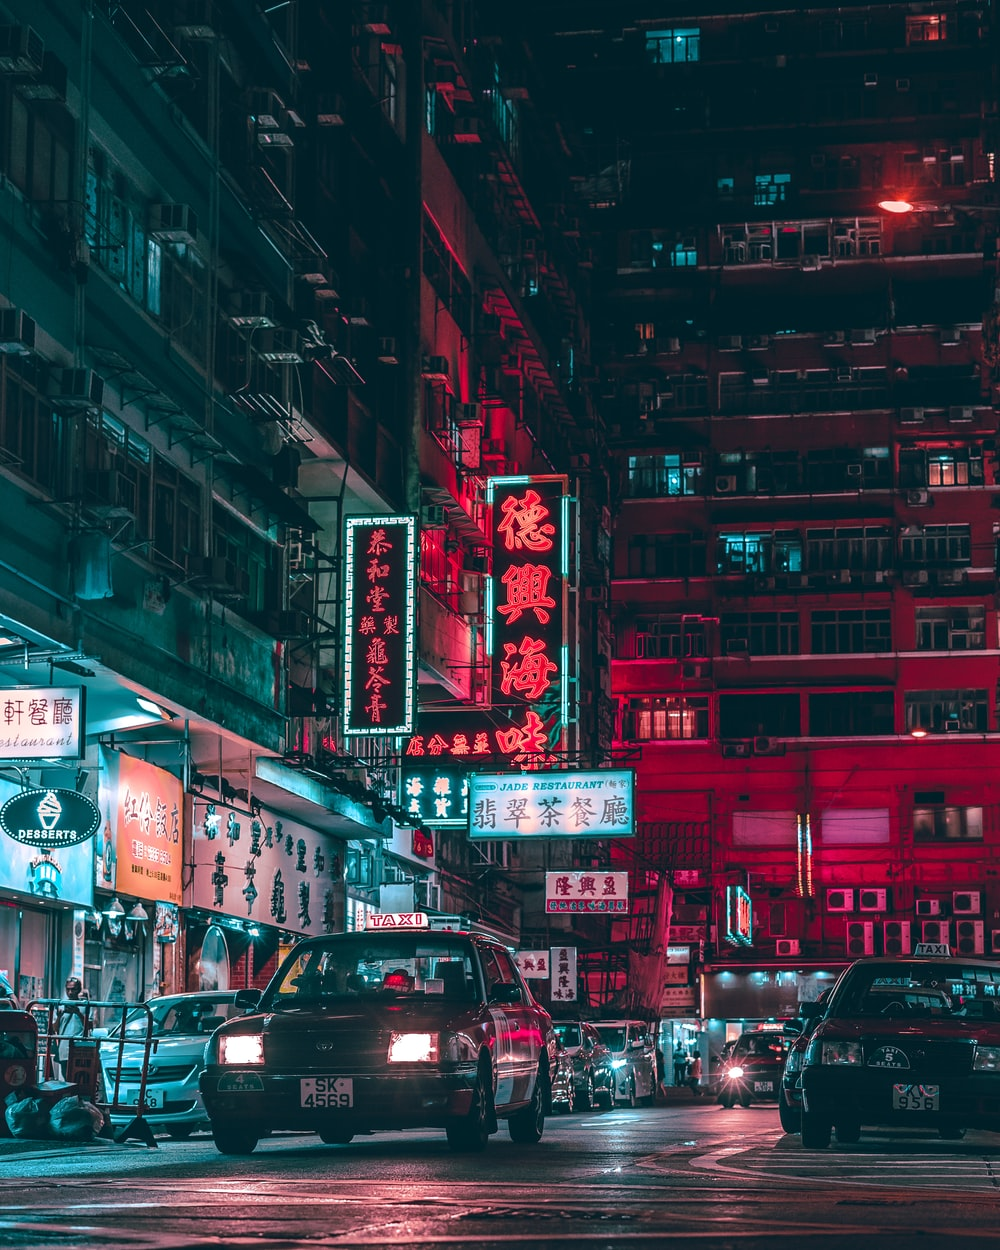 City Aesthetic Pictures